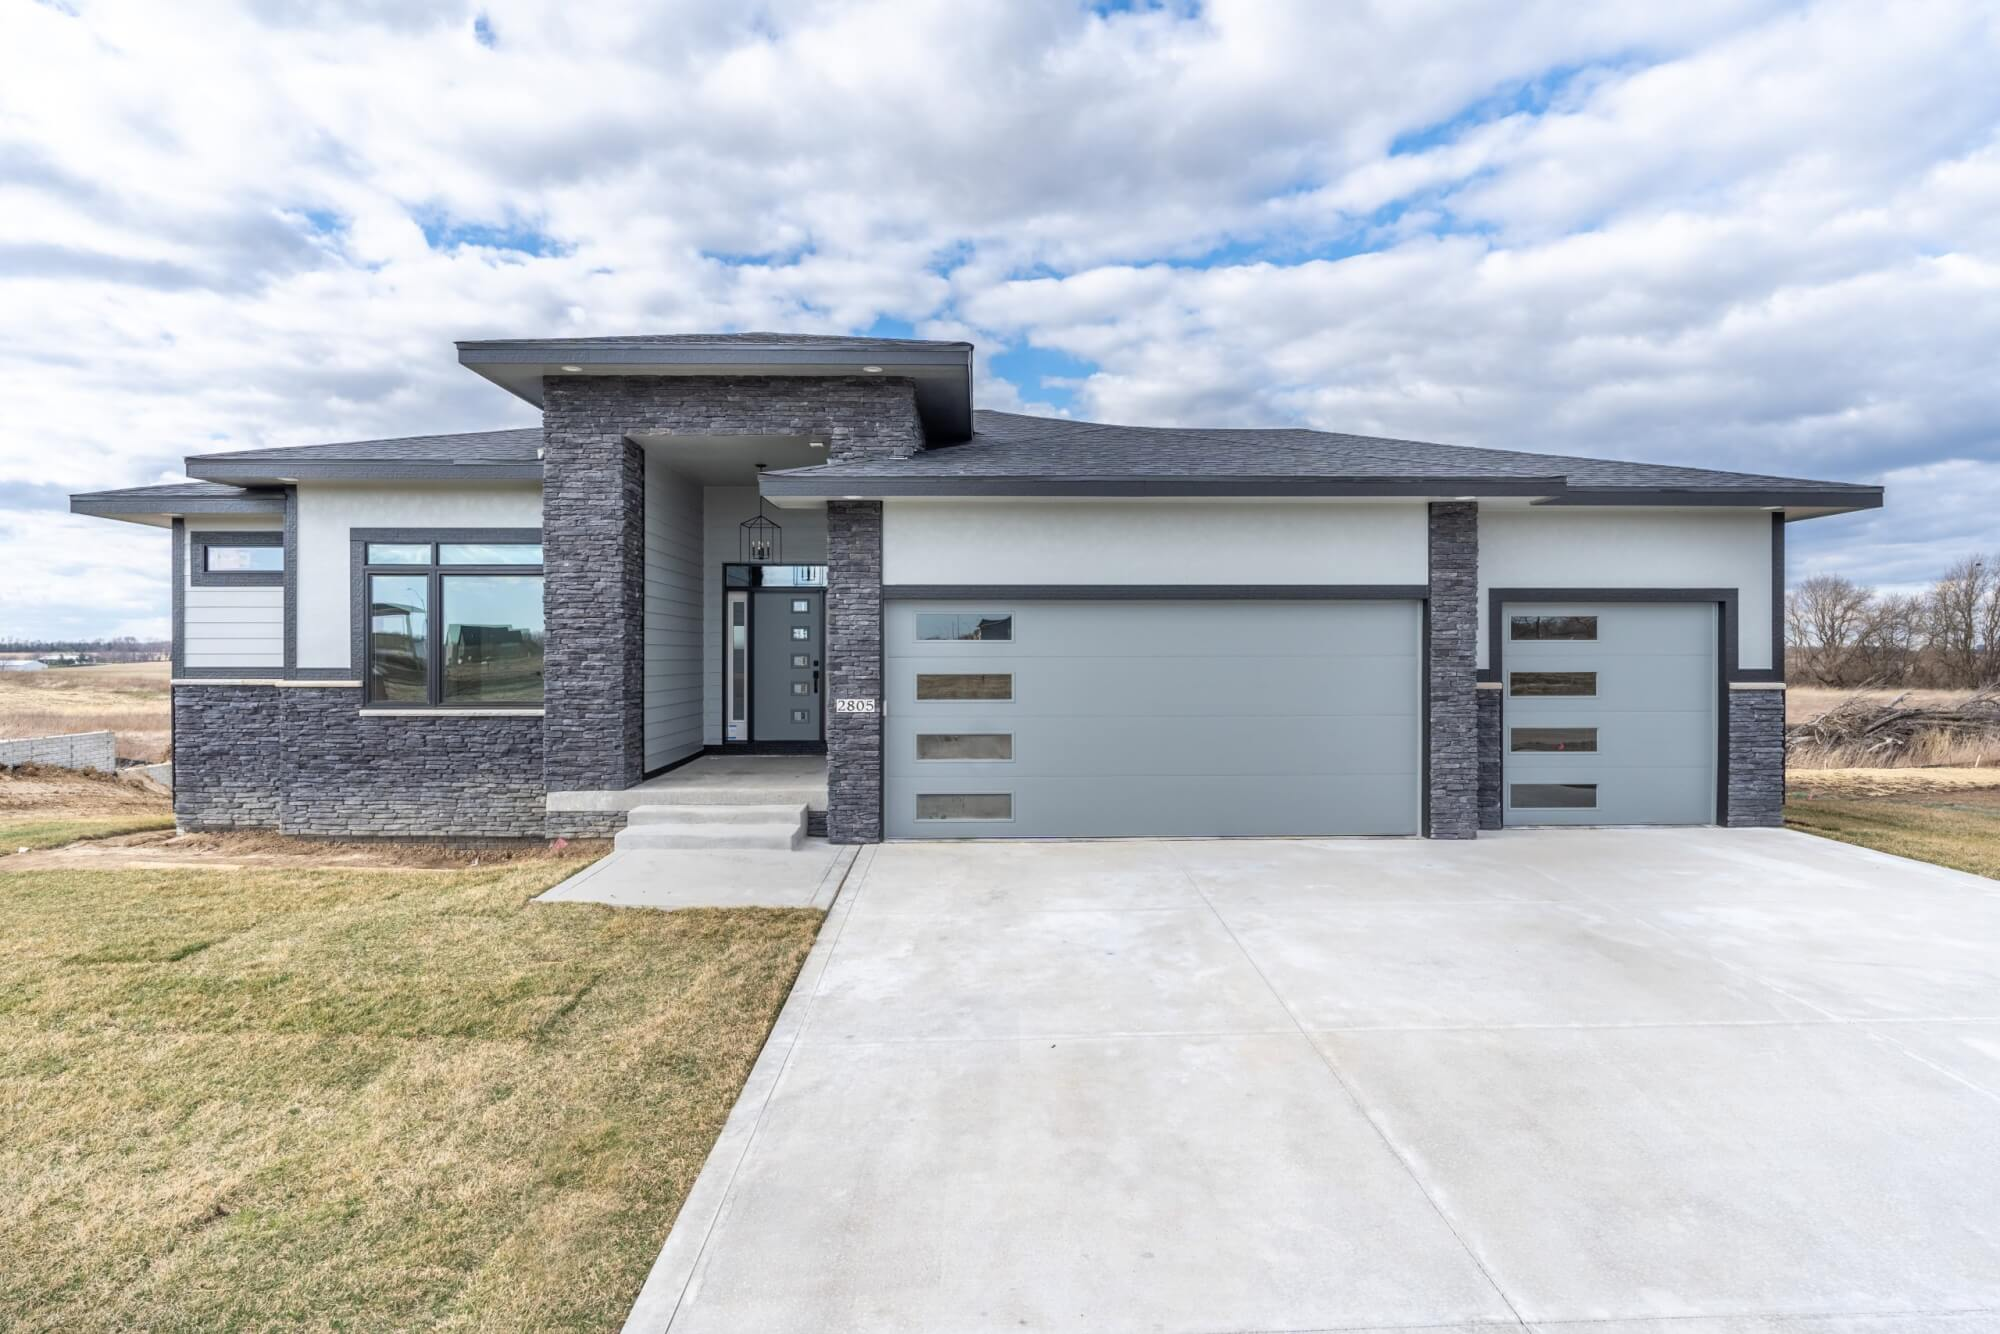 A one-story, grey-colored home built by Kruse Development in Central Iowa.